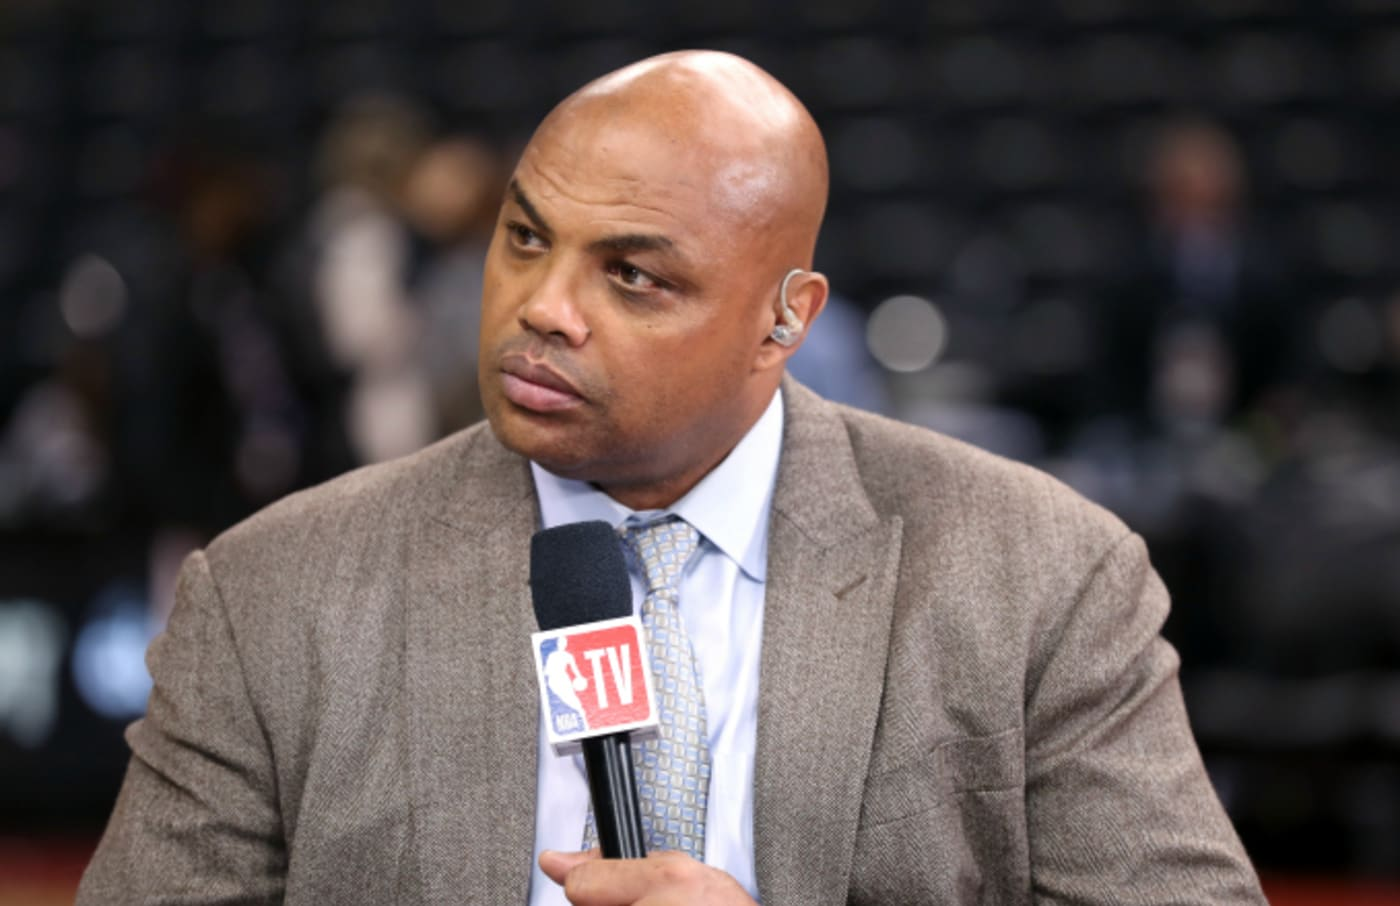 Charles Barkley provides commentary after Game One of the NBA Finals